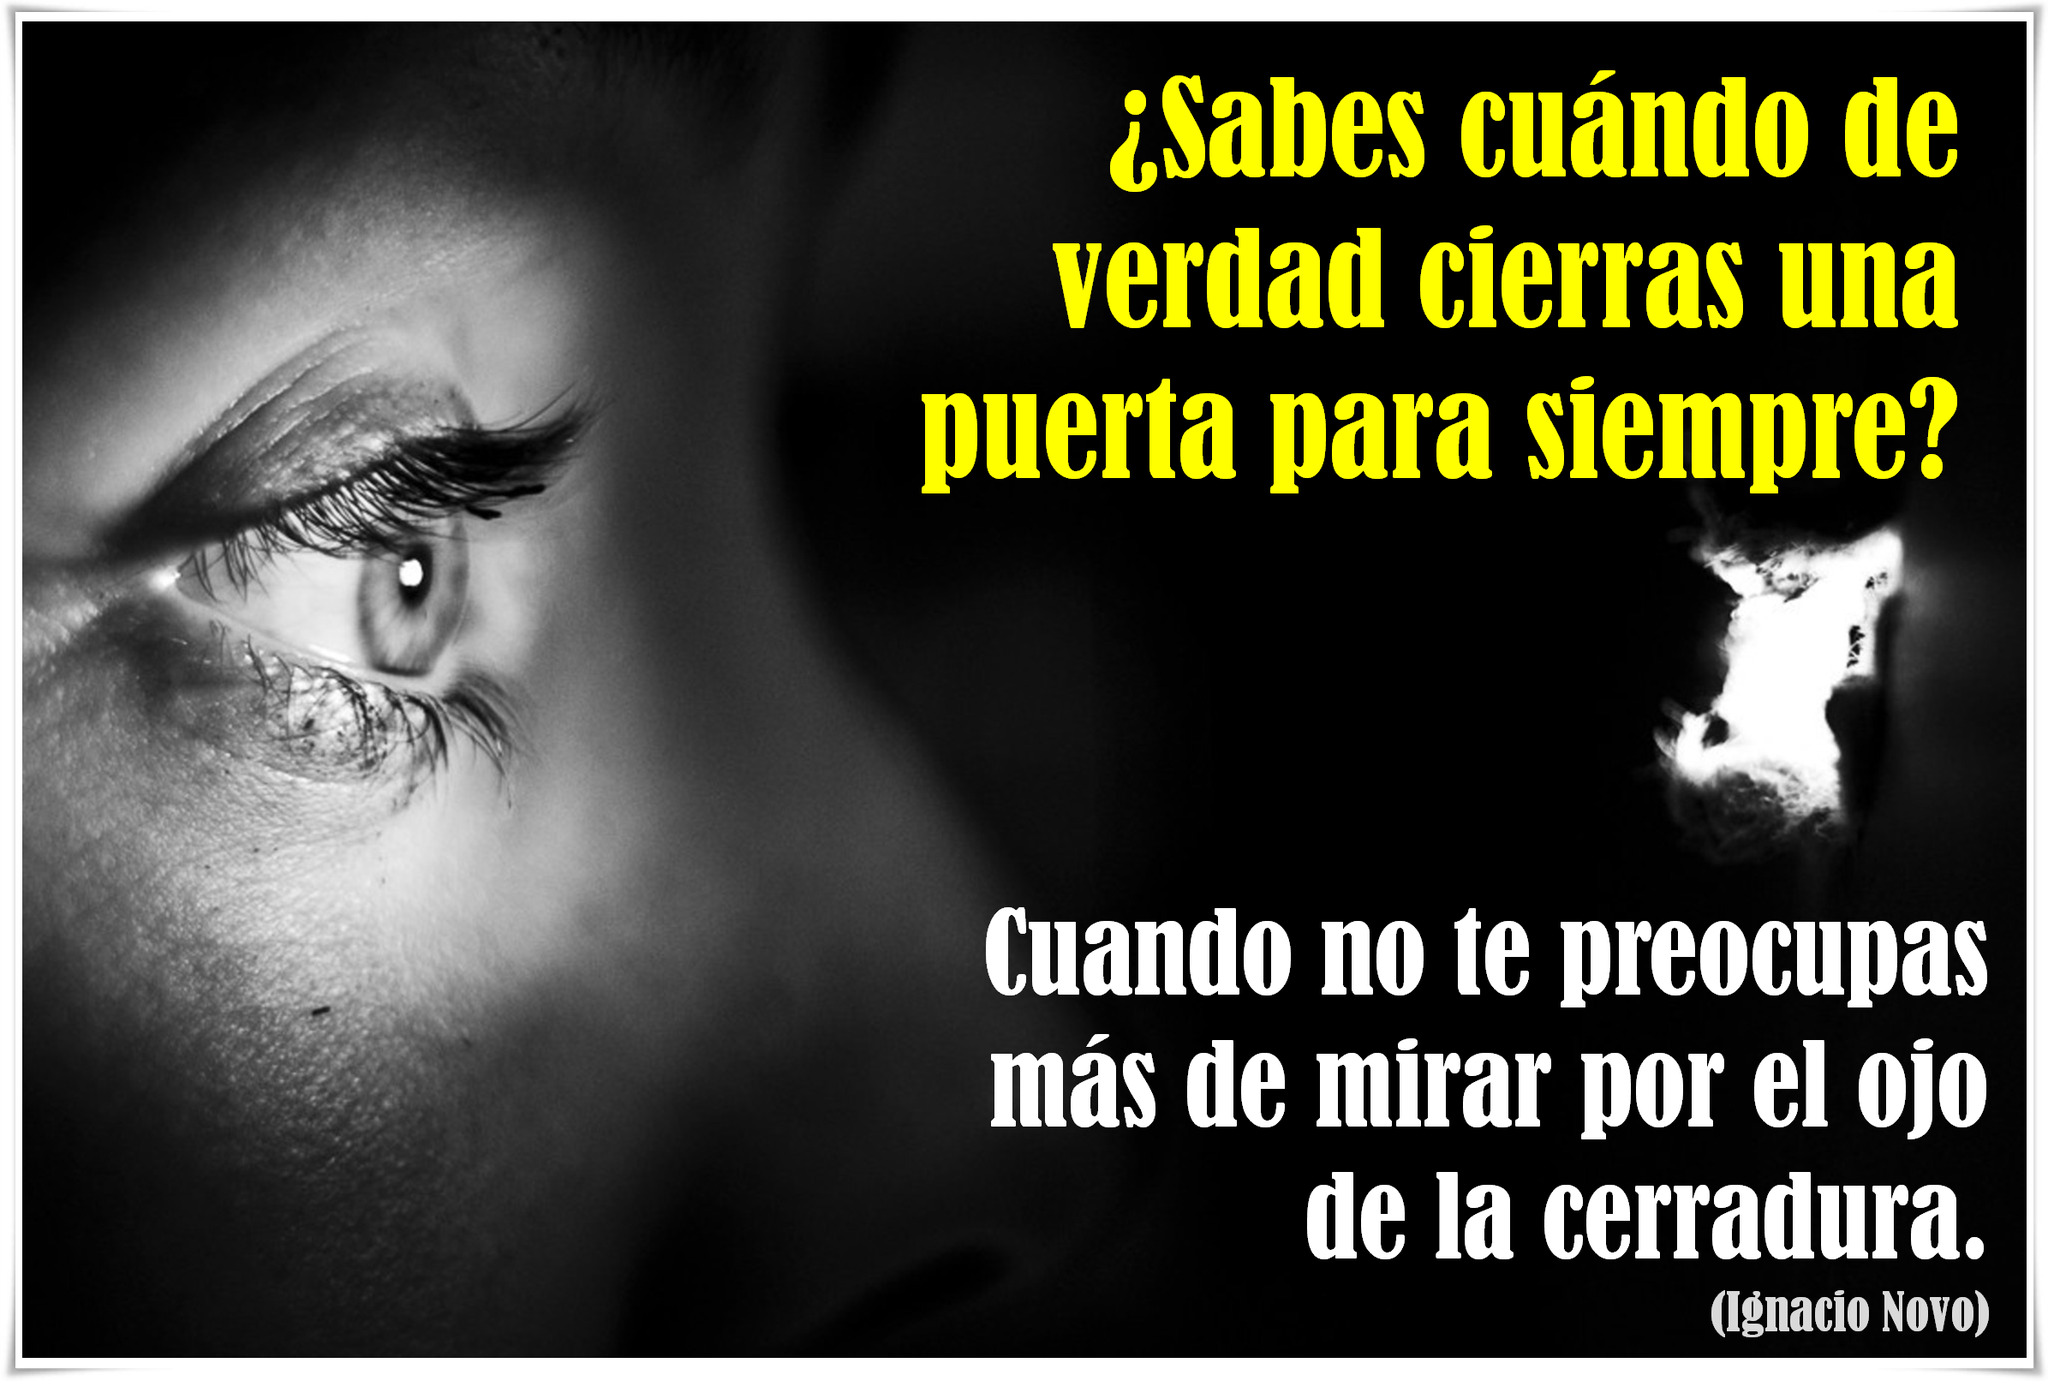 """Frases para cambiar on Twitter: """"#frases #tuitdeldia https://t.co/MbLefFmXos"""""""